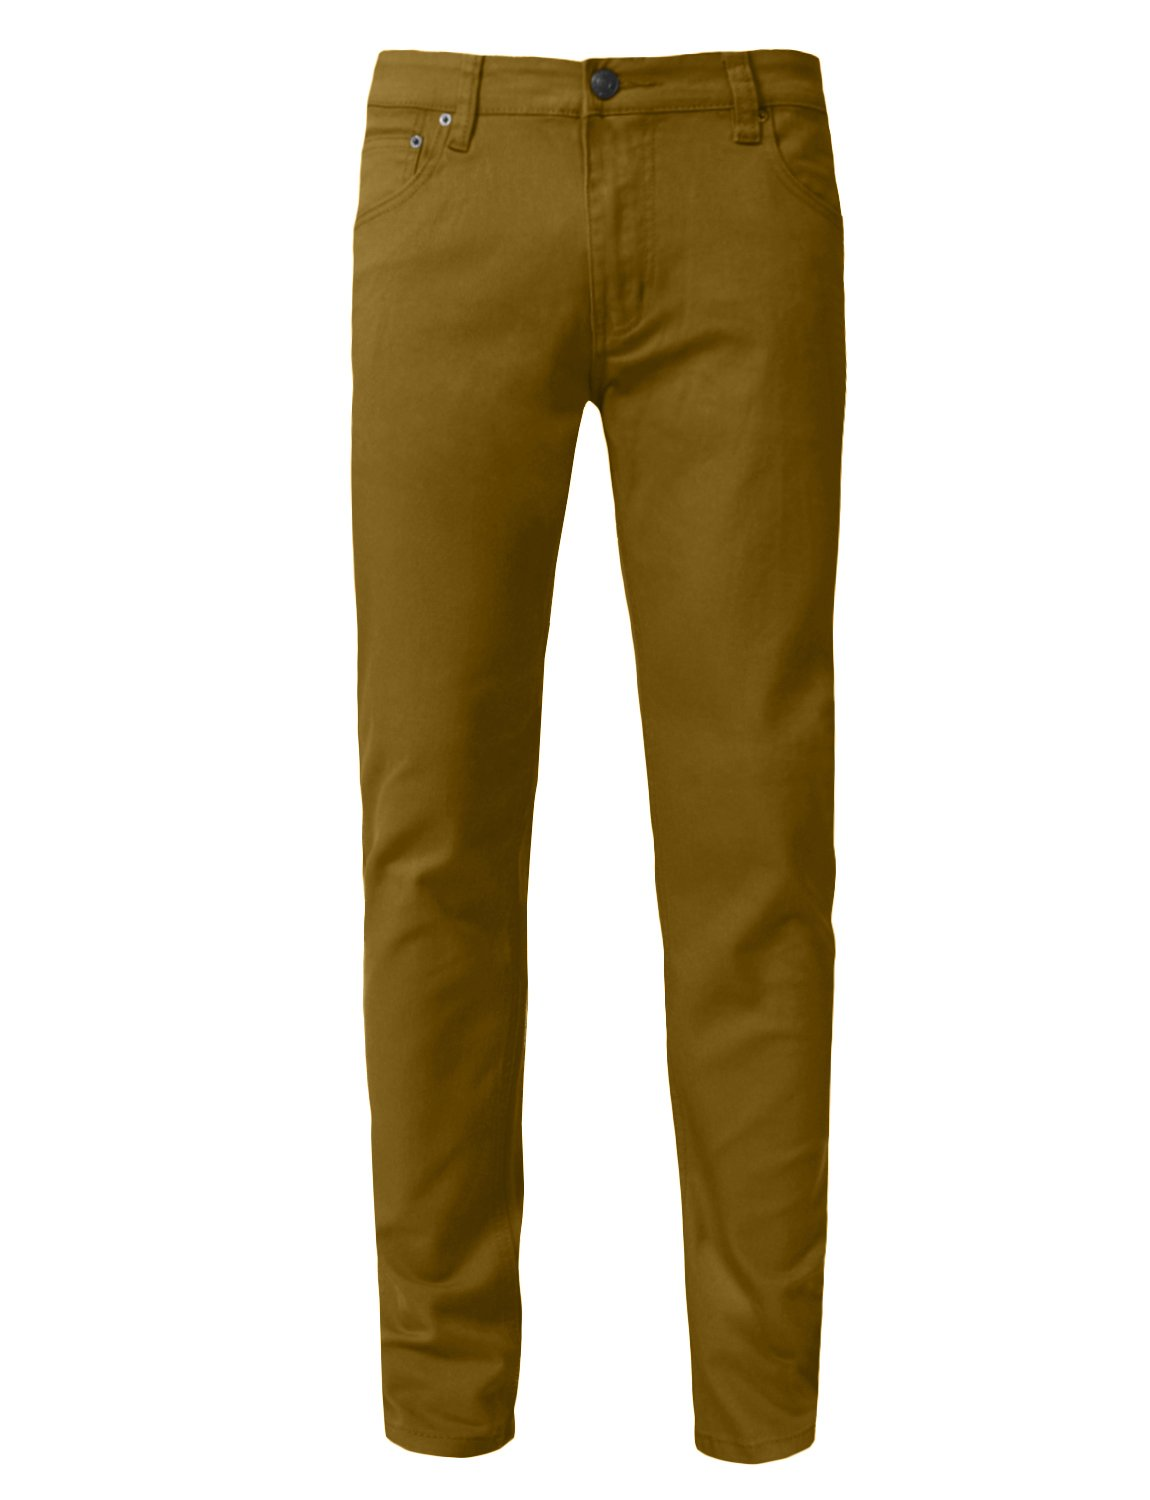 NE PEOPLE Mens Light Solid Basic Casual Slim Fit Twill Skinny Color Jeans Pants-DARKWHEAT-30X30